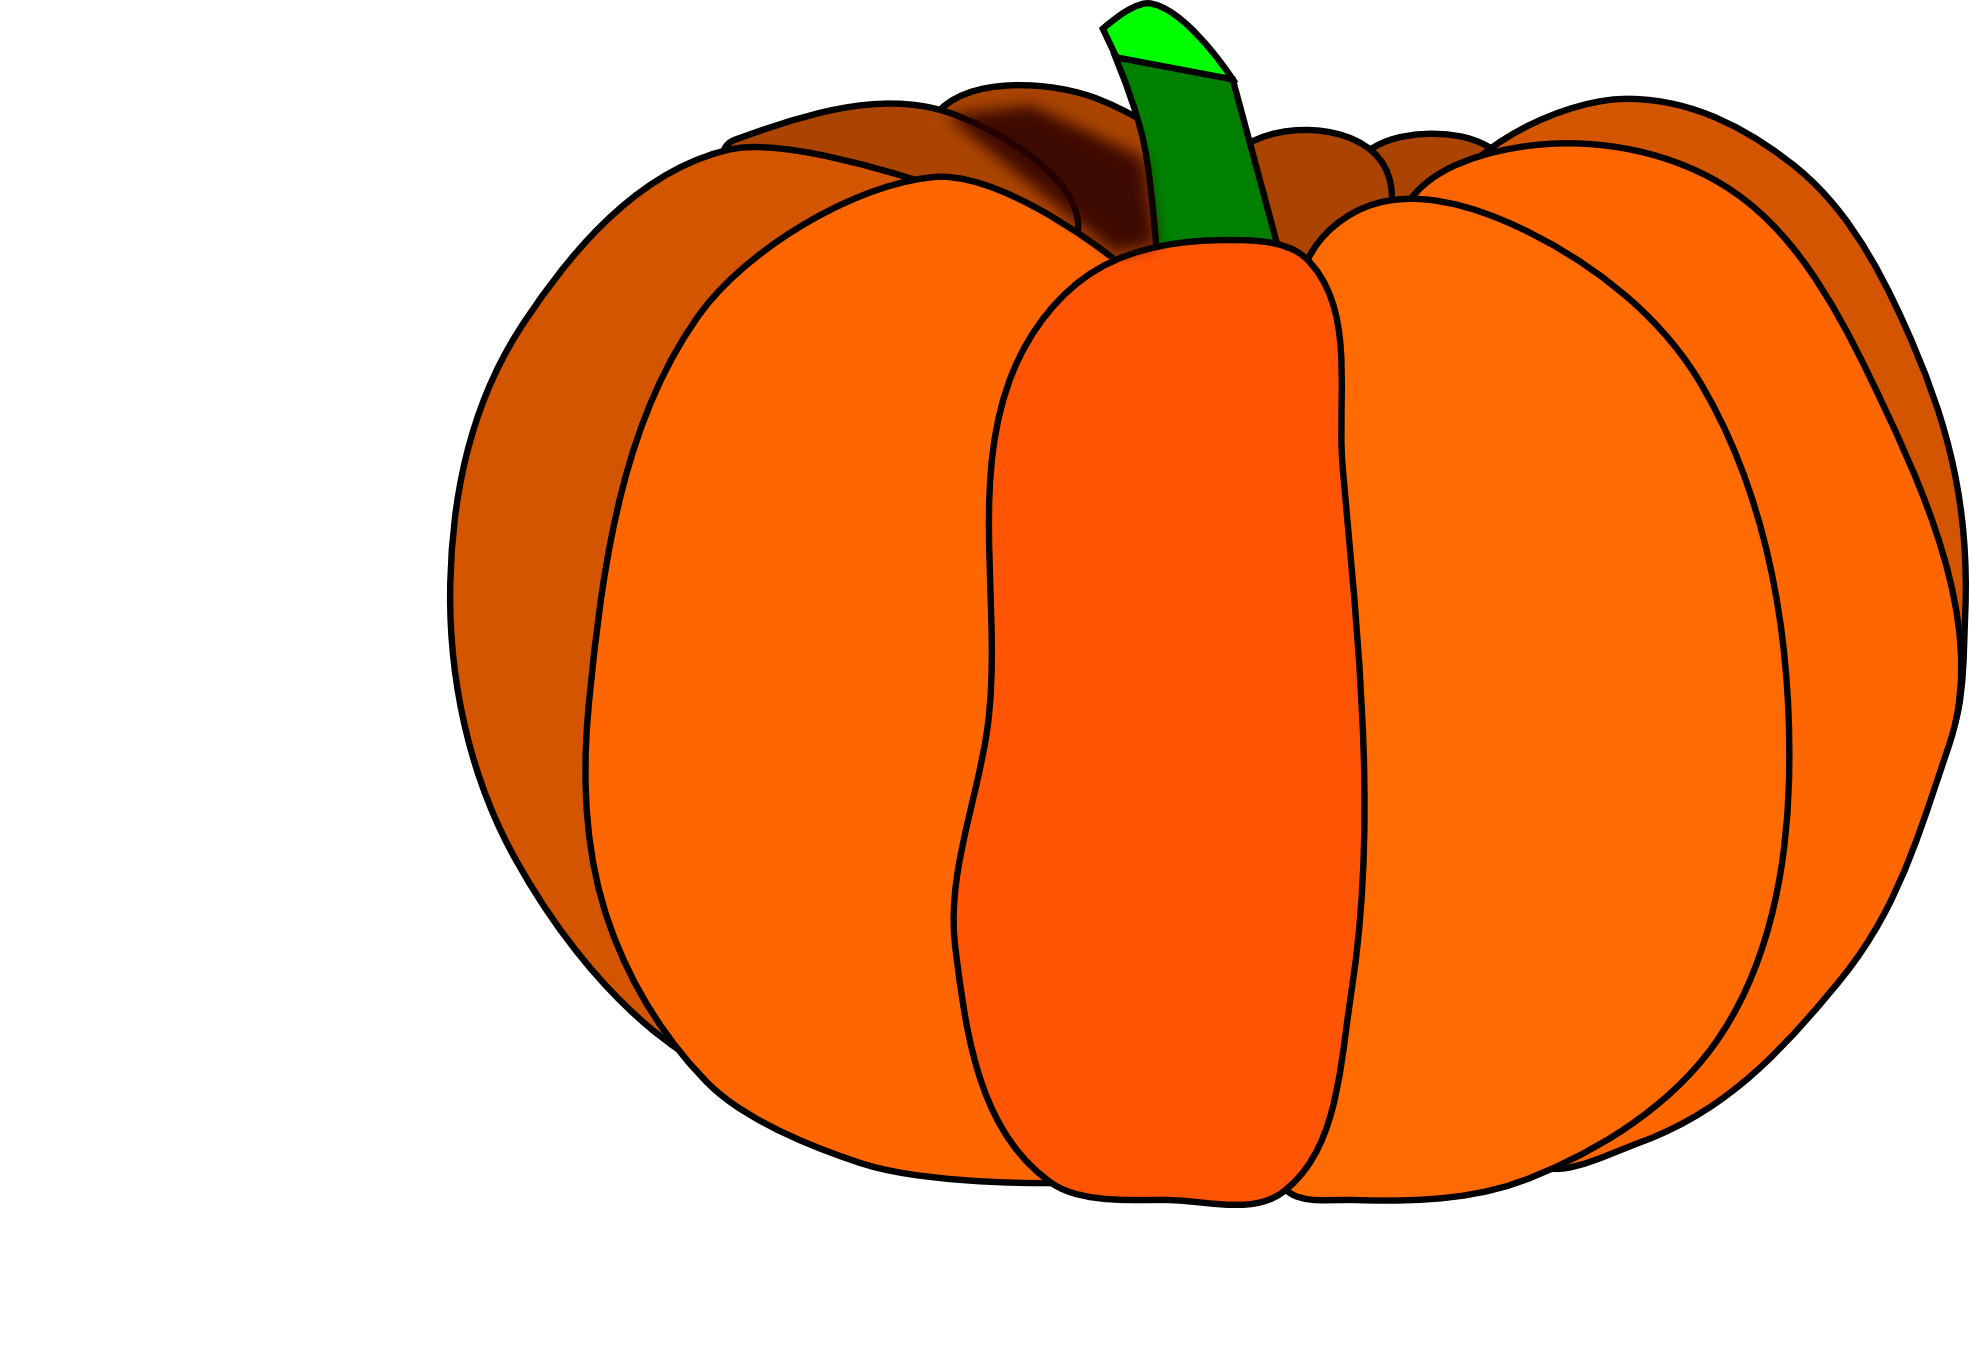 Orange Pumpkin Clipart.